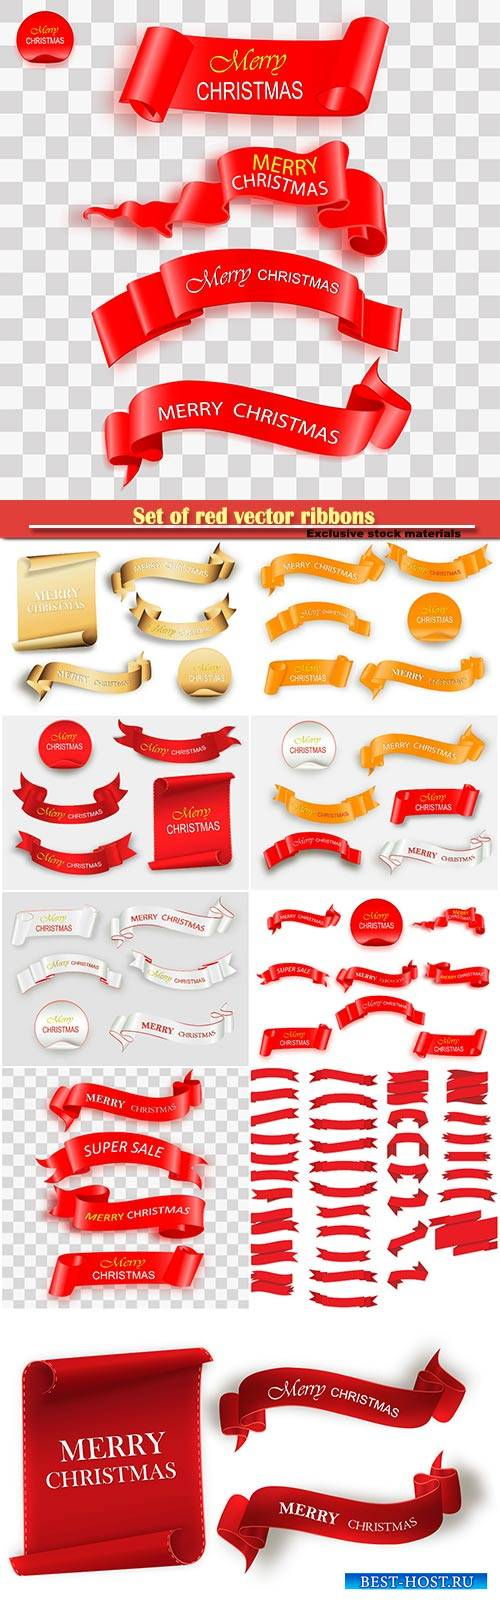 Set of red vector ribbons isolated on white background